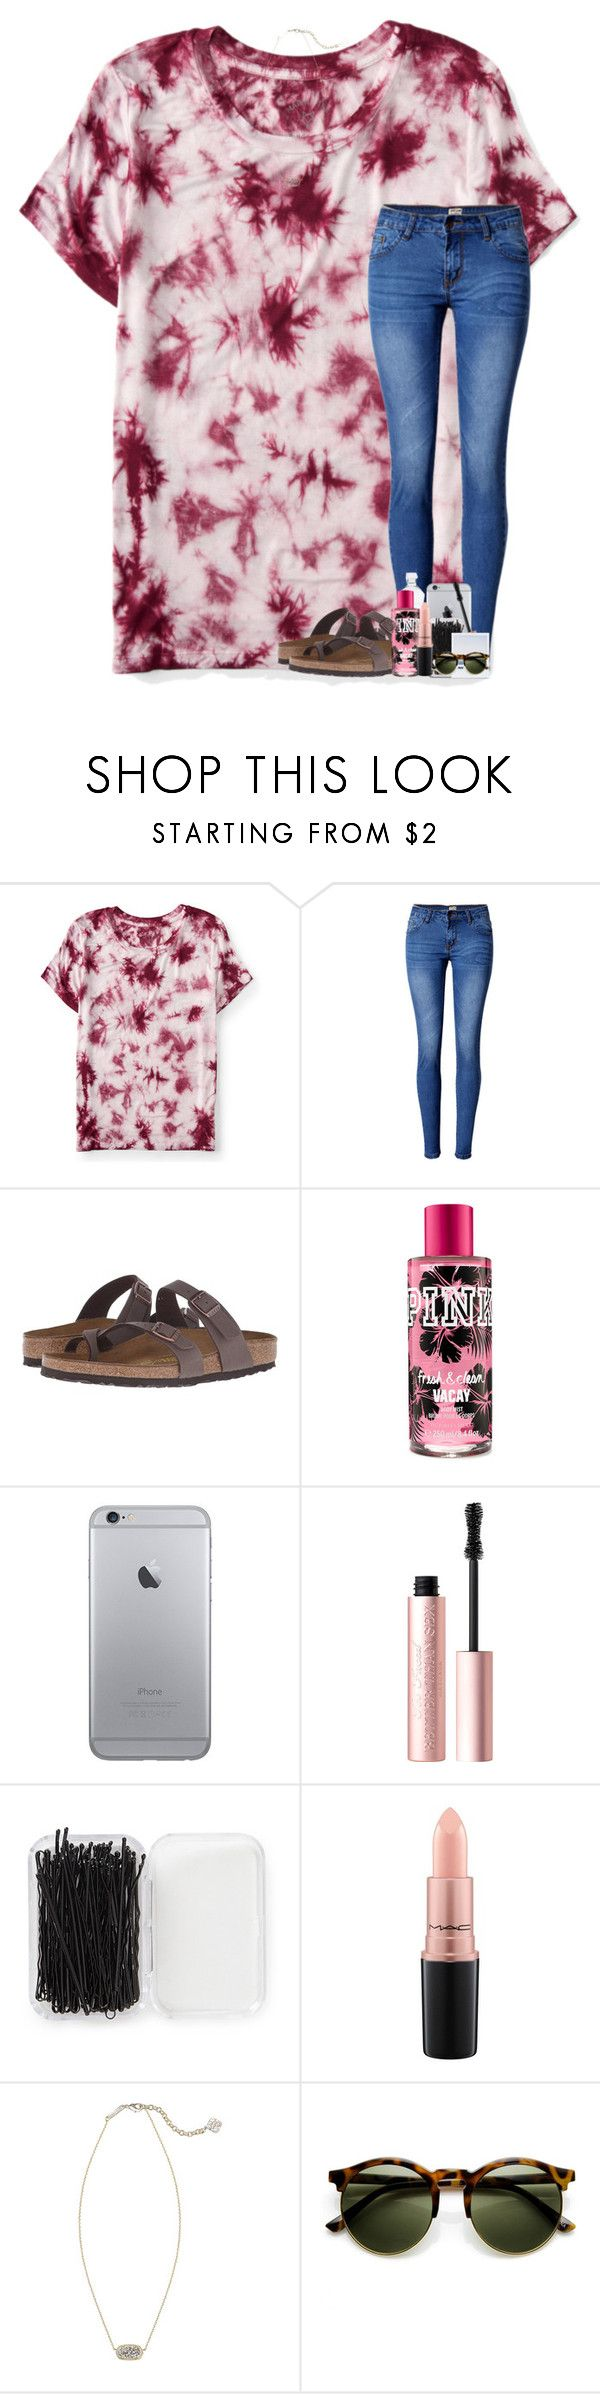 """please rtd. "" by theblonde07 ❤ liked on Polyvore featuring Aéropostale, WithChic, Birkenstock, Too Faced Cosmetics, Forever 21, MAC Cosmetics and Kendra Scott"